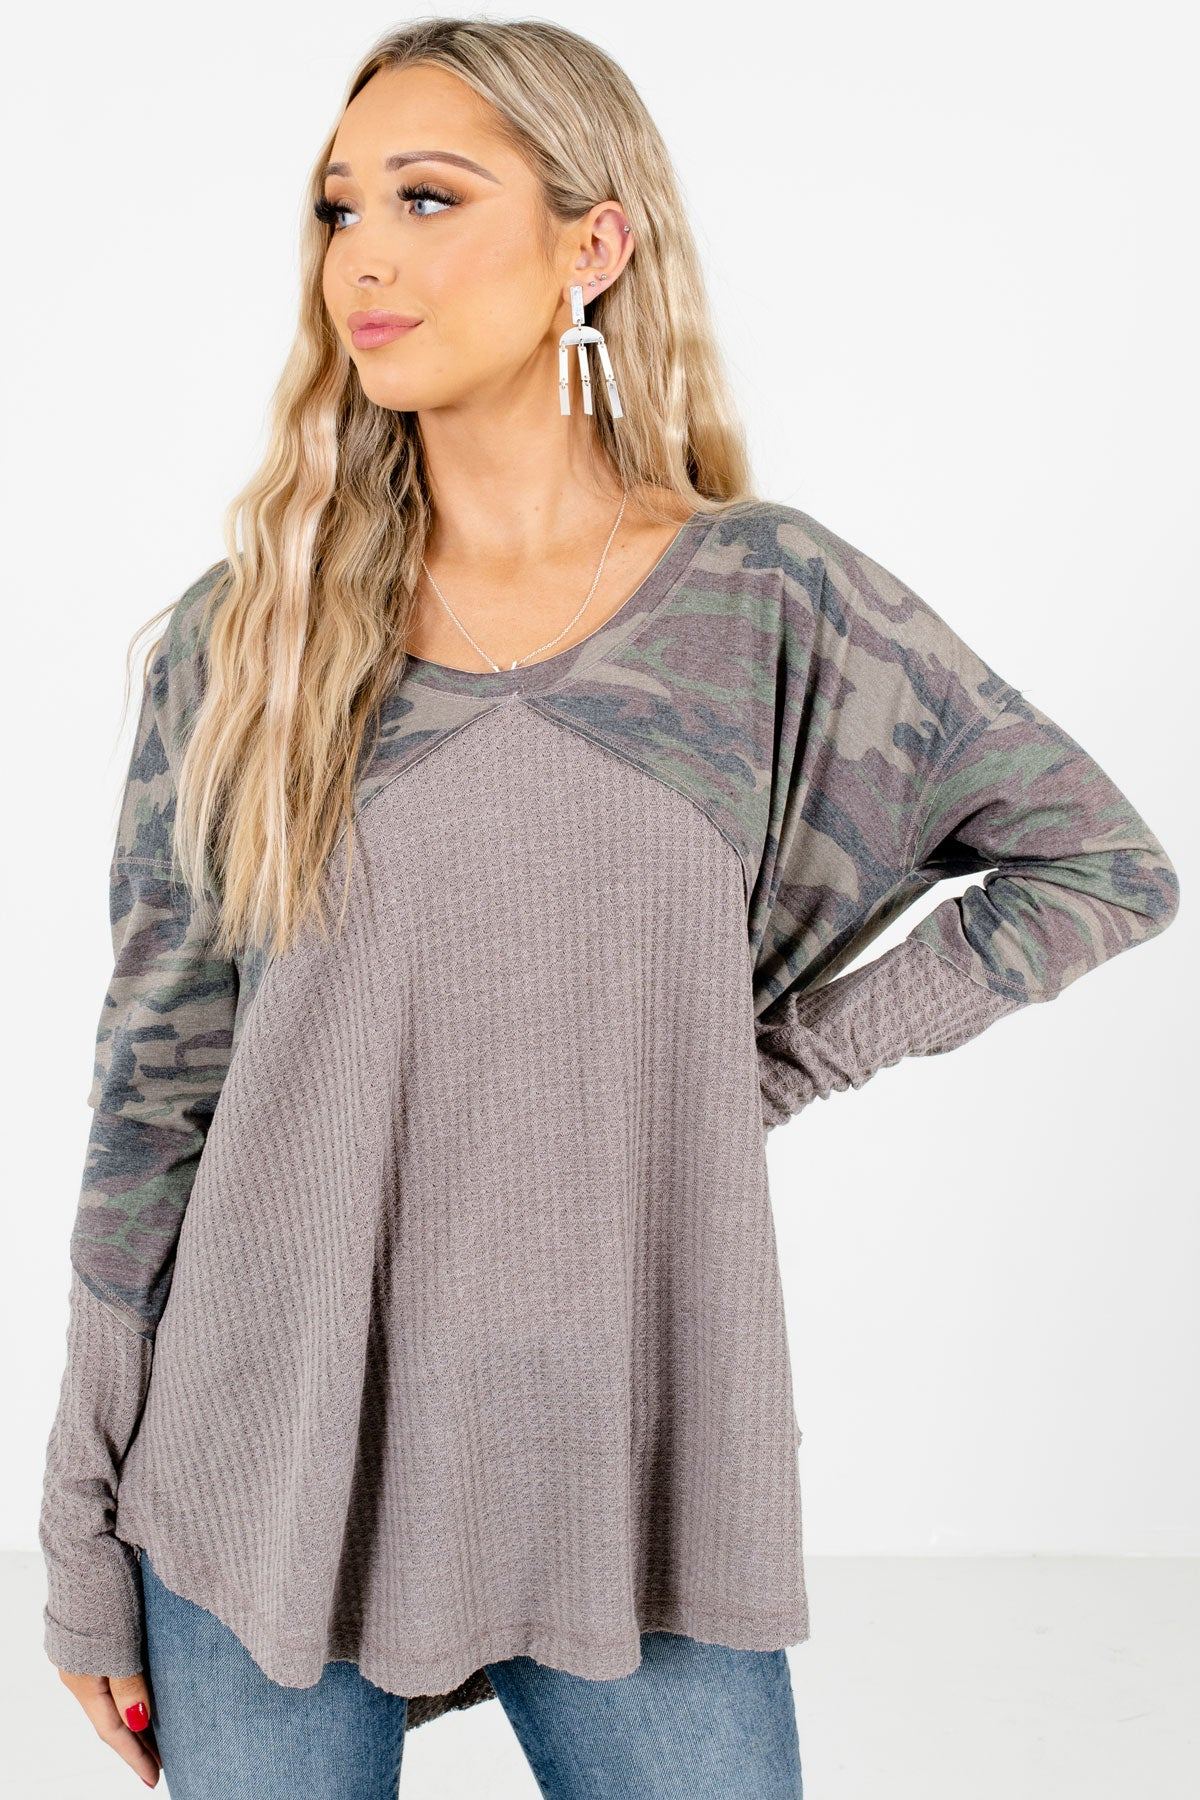 Gray and Green Camo Print Boutique Tops for Women